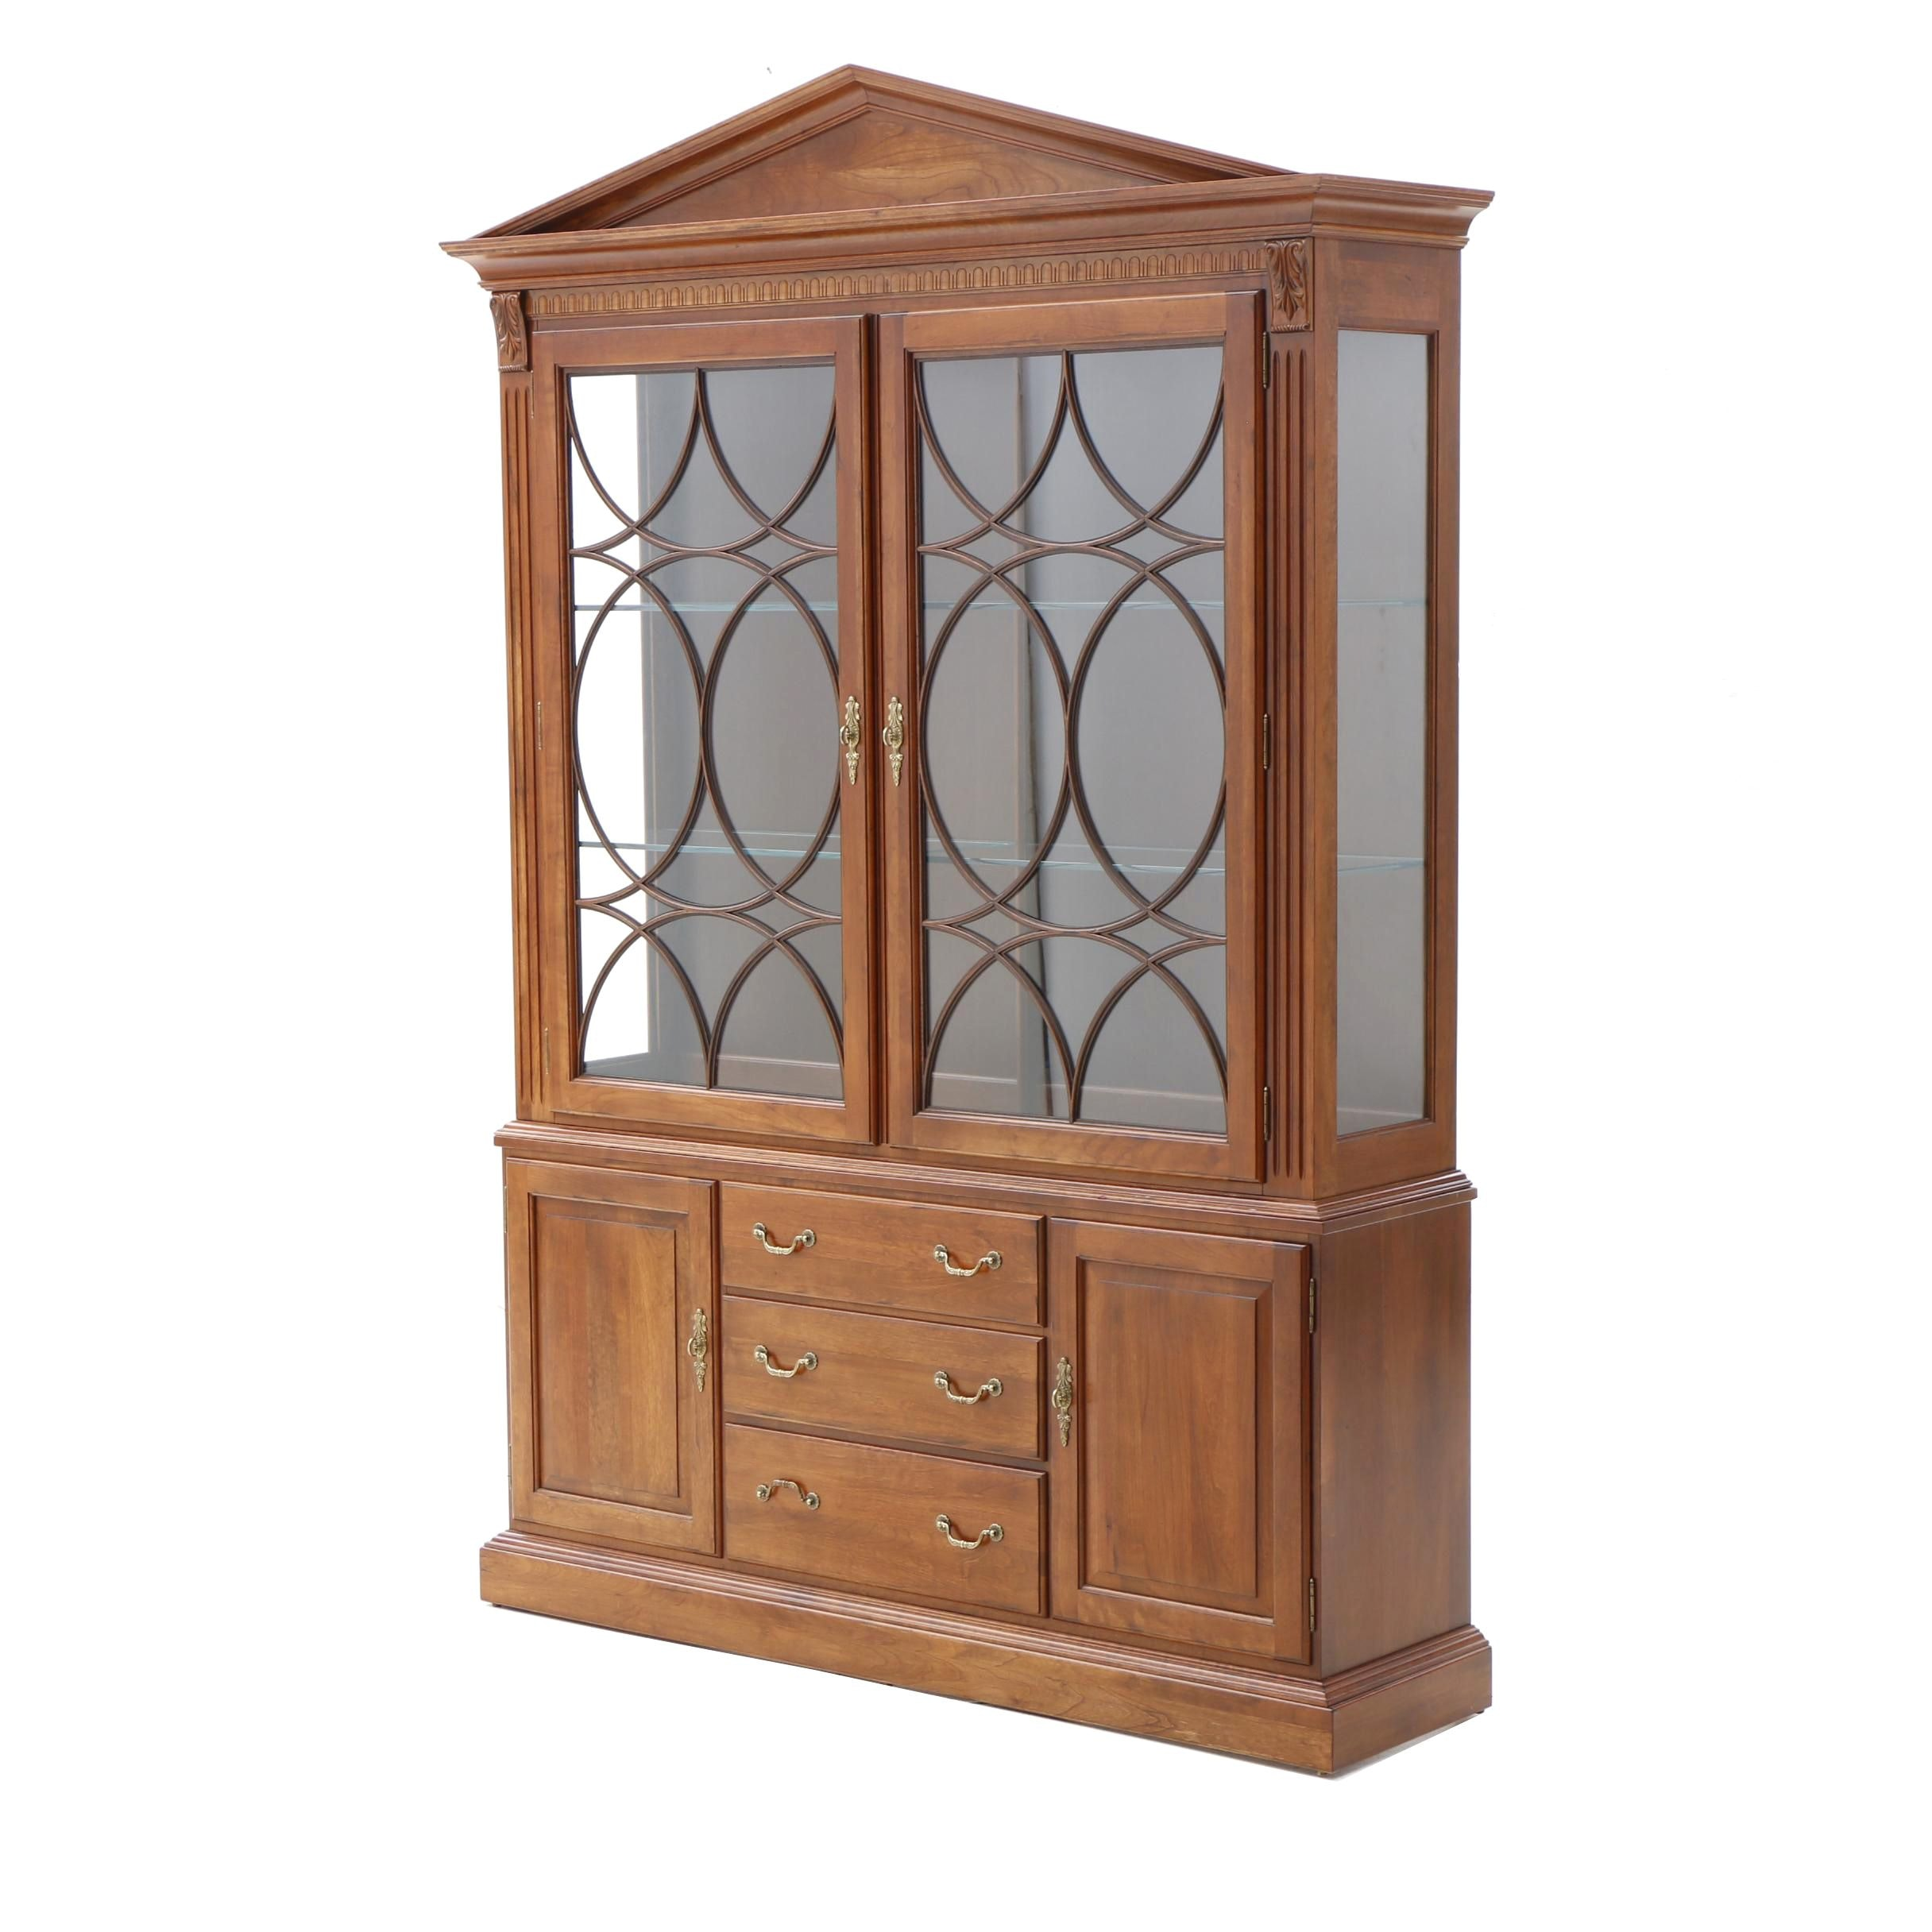 "Ethan Allen ""Regents Park"" China Cabinet in Cherry"